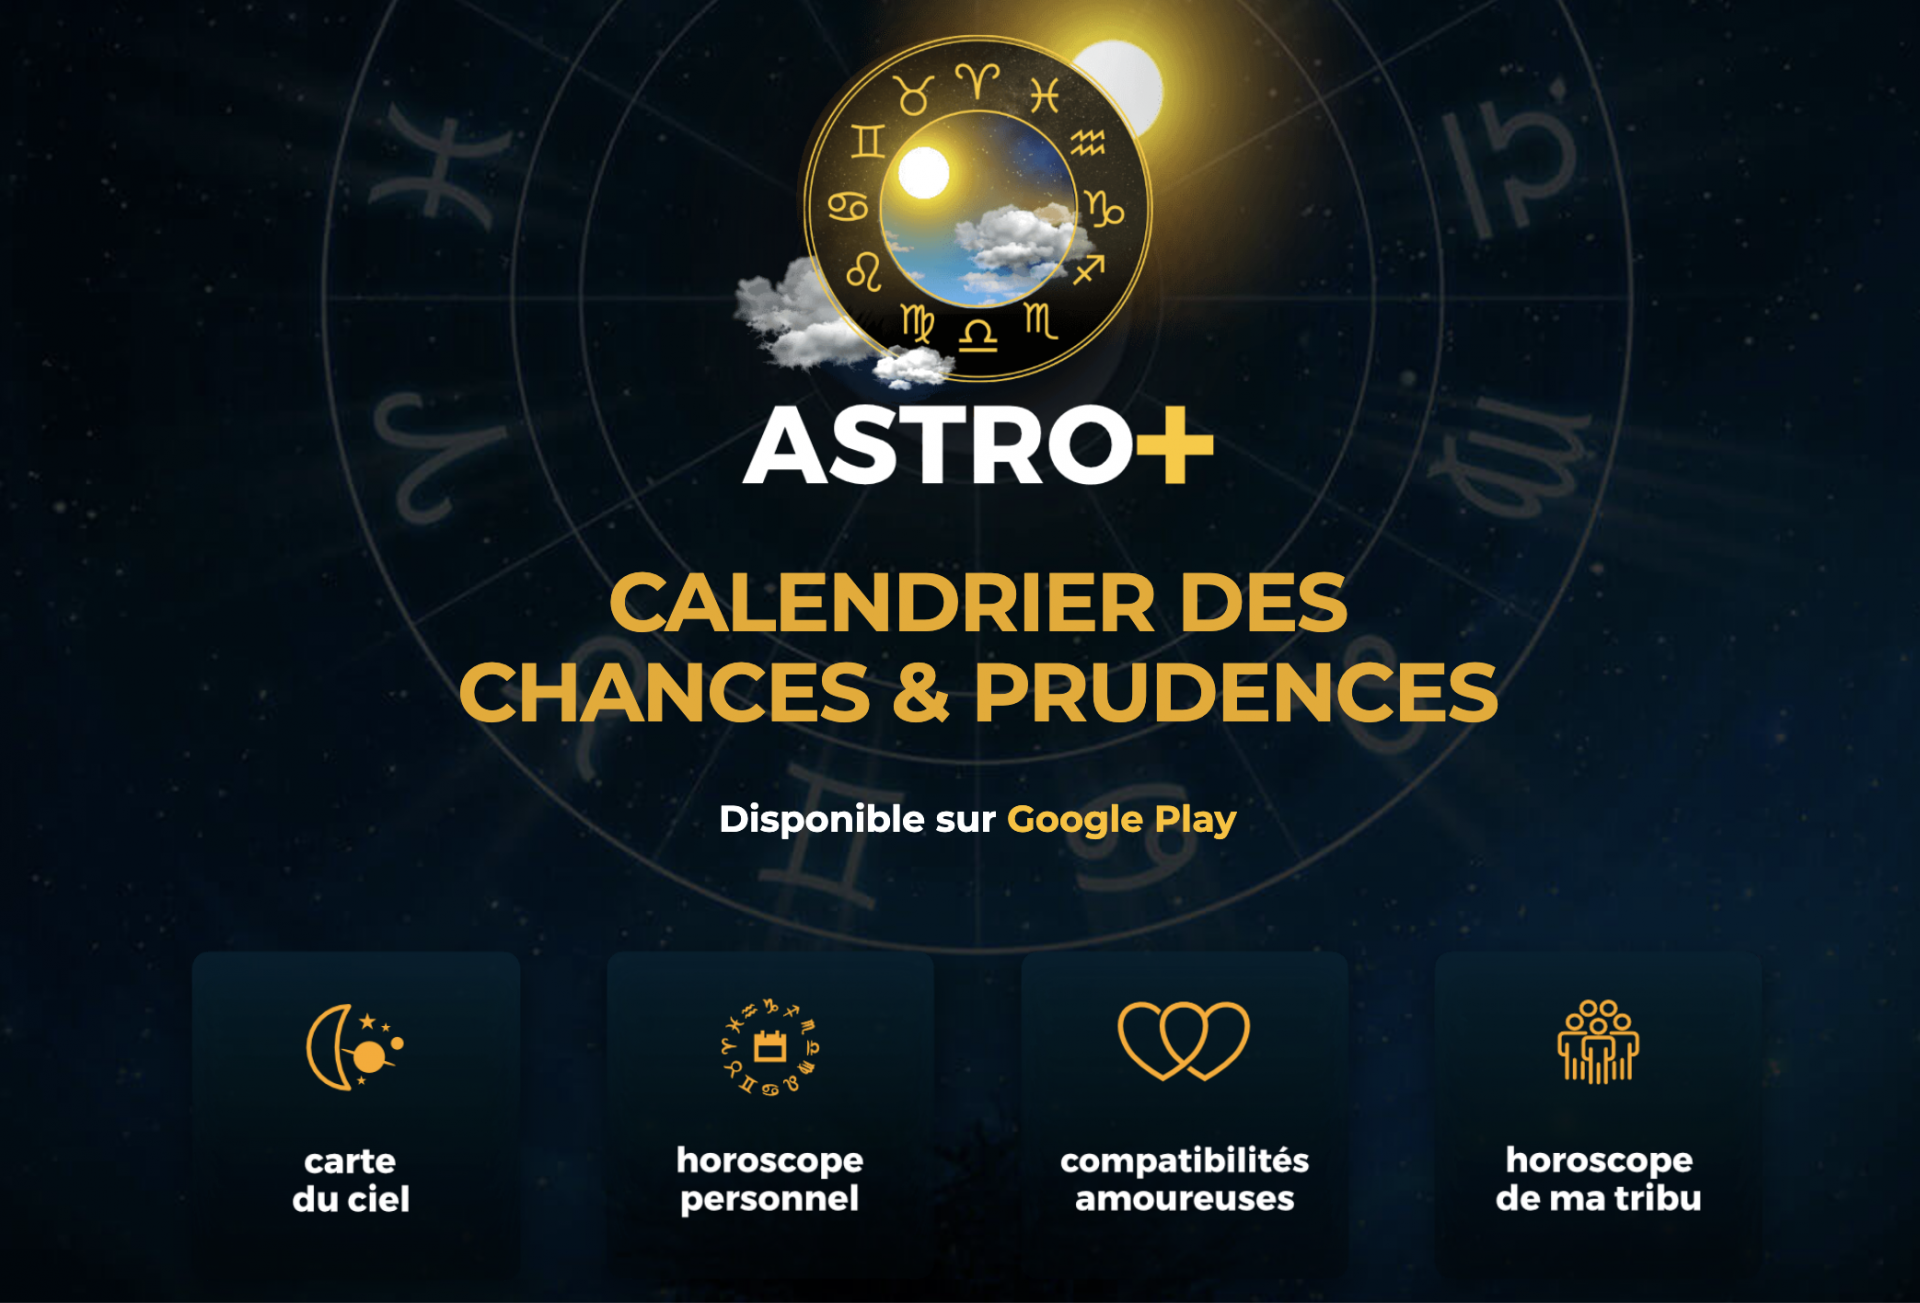 Astro+ landing page